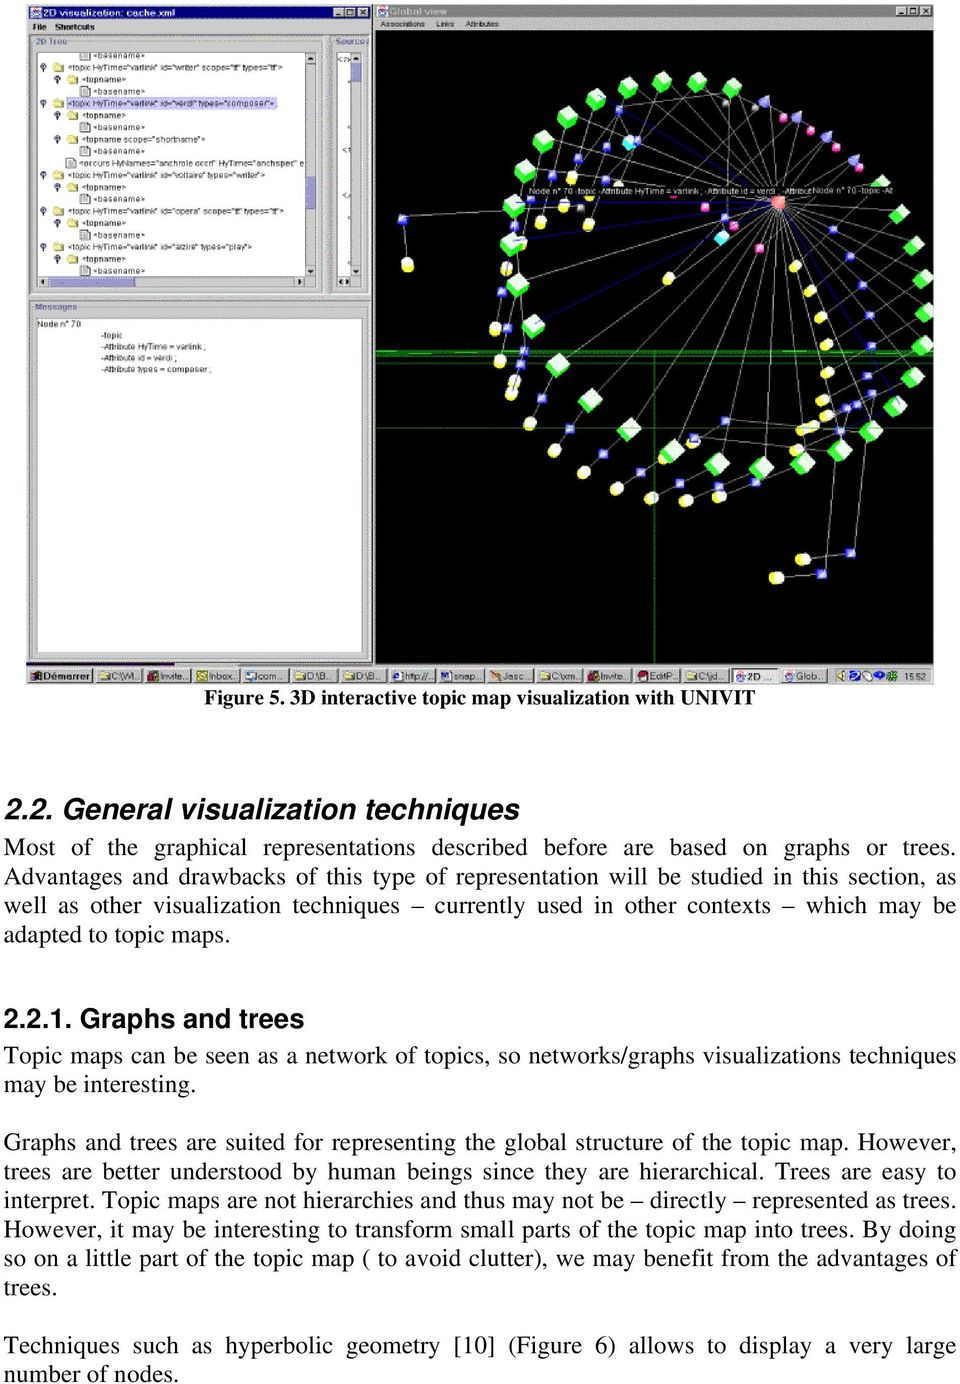 2.2.1. Graphs and trees Topic maps can be seen as a network of topics, so networks/graphs visualizations techniques may be interesting.